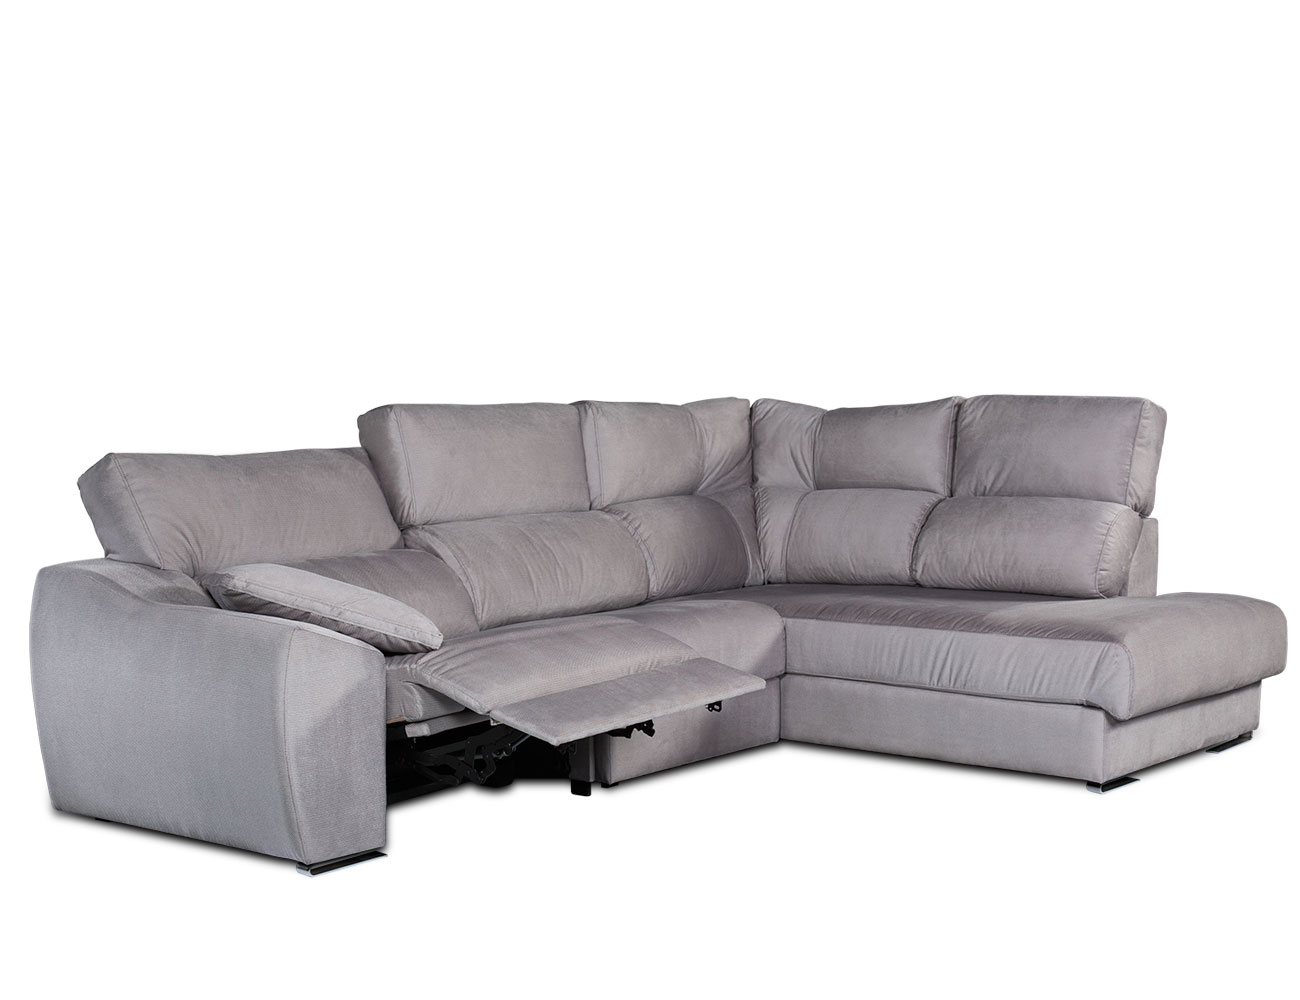 Sofa chaiselongue rincon electrico 2